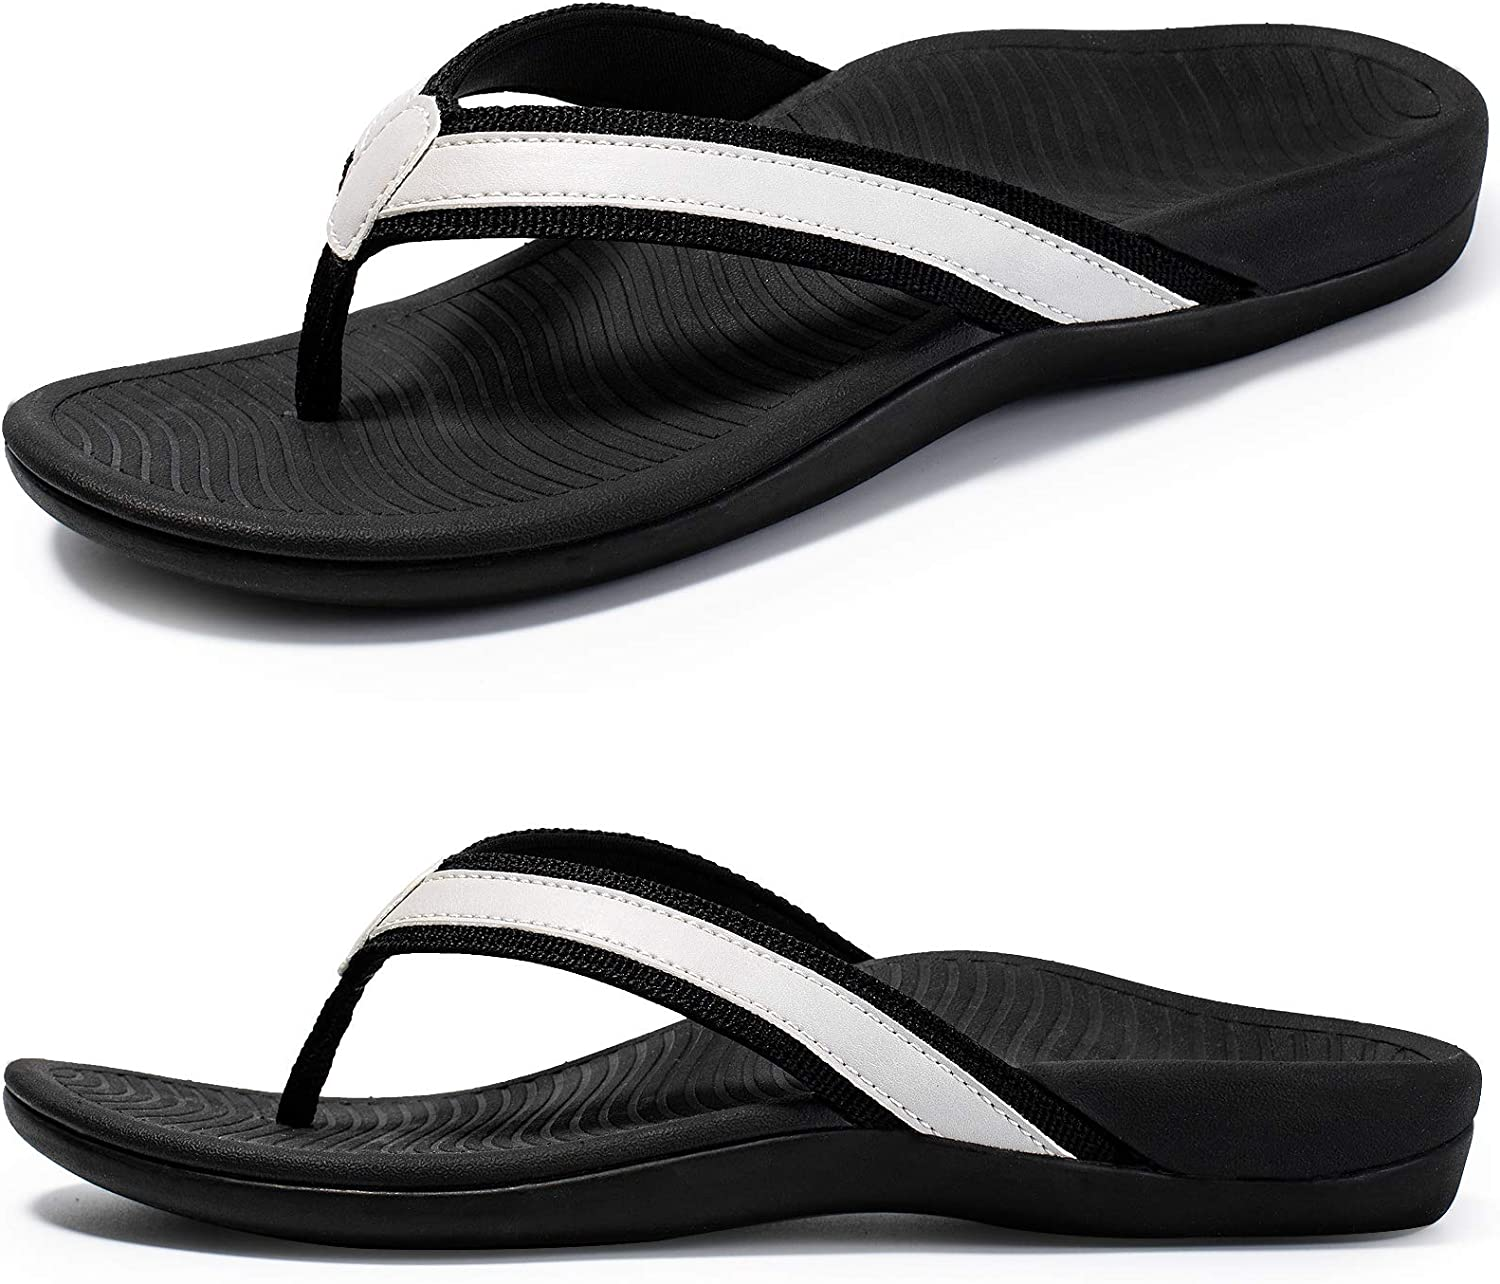 Womans Sandals Flip Flop with Orthotic Ranking cheap TOP9 Plantar For Feet Fas Flat